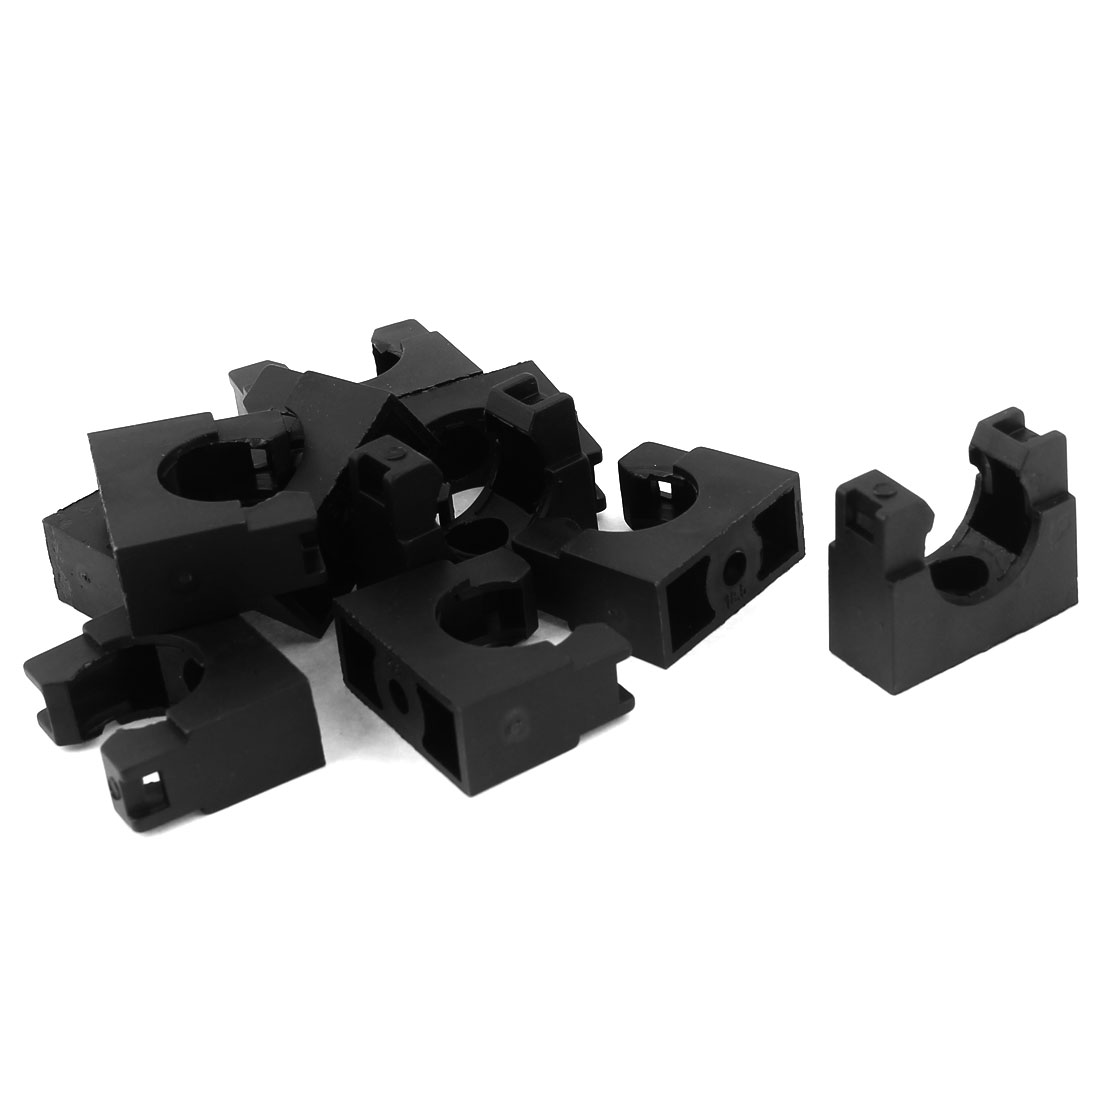 10pcs AD18.5 18.5mm Corrugated Tubing Black Plastic Fixed Mount Bracket